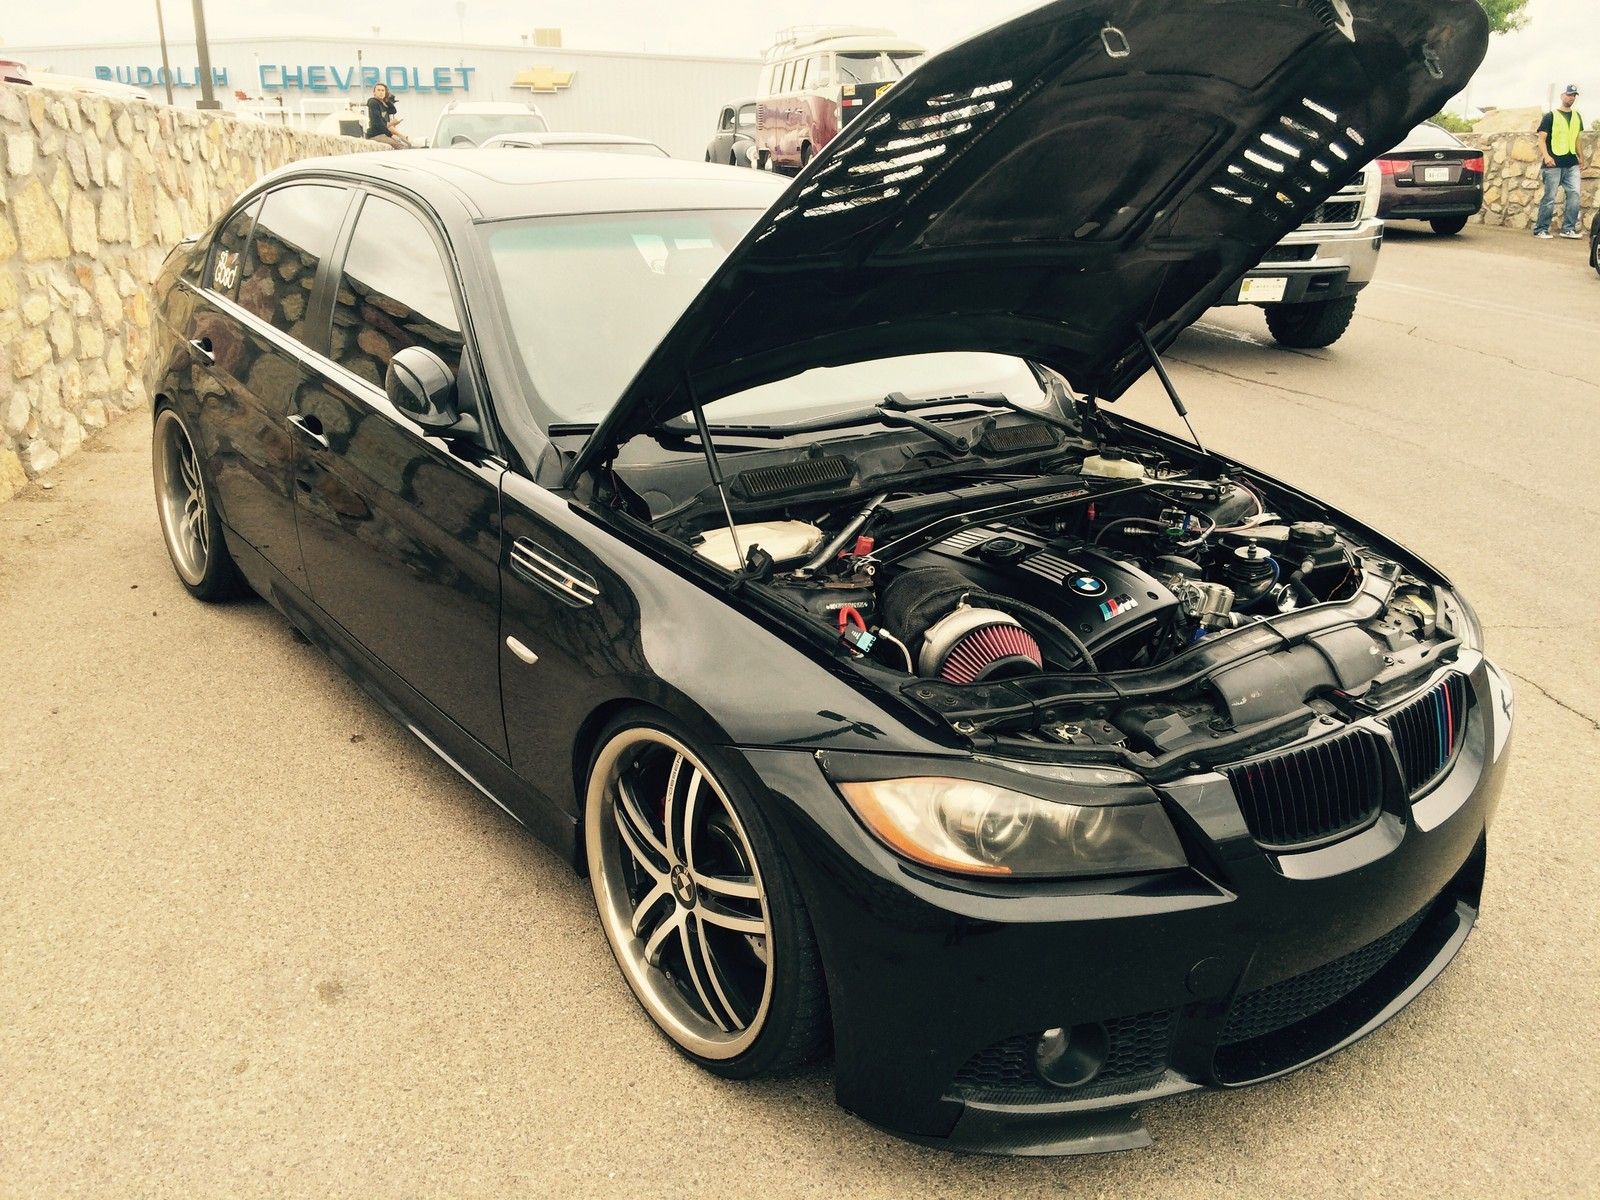 2017 Bmw 335i >> This BMW E90 335i Just Put Down 741 WHP and 624 lb-ft of Torque – Video - autoevolution